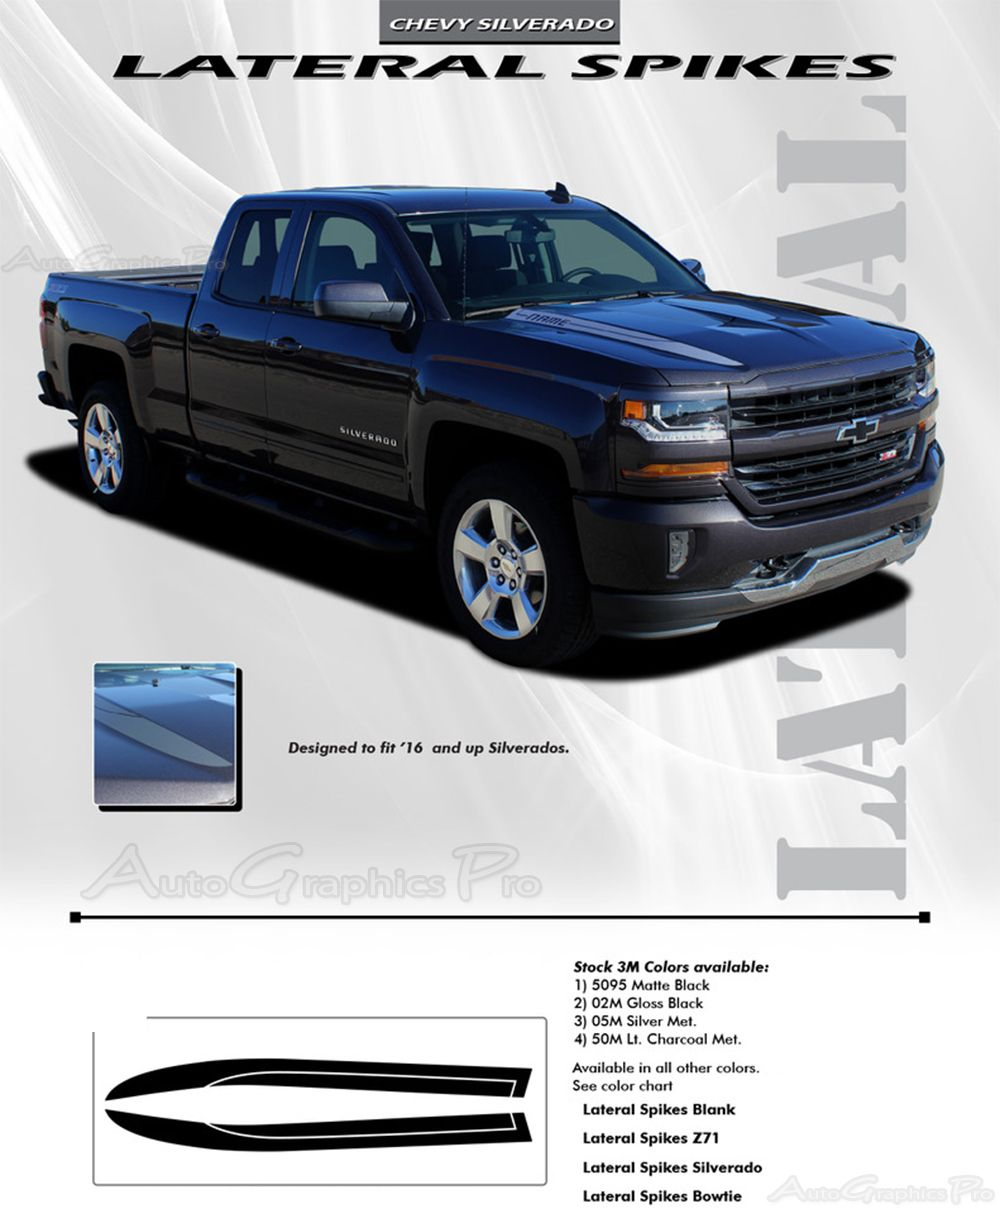 Chevy Silverado LATERAL SPIKES Double Hood Spear Hood - Chevy decals for trucksmore decalchevrolet silverado rally edition unveiled